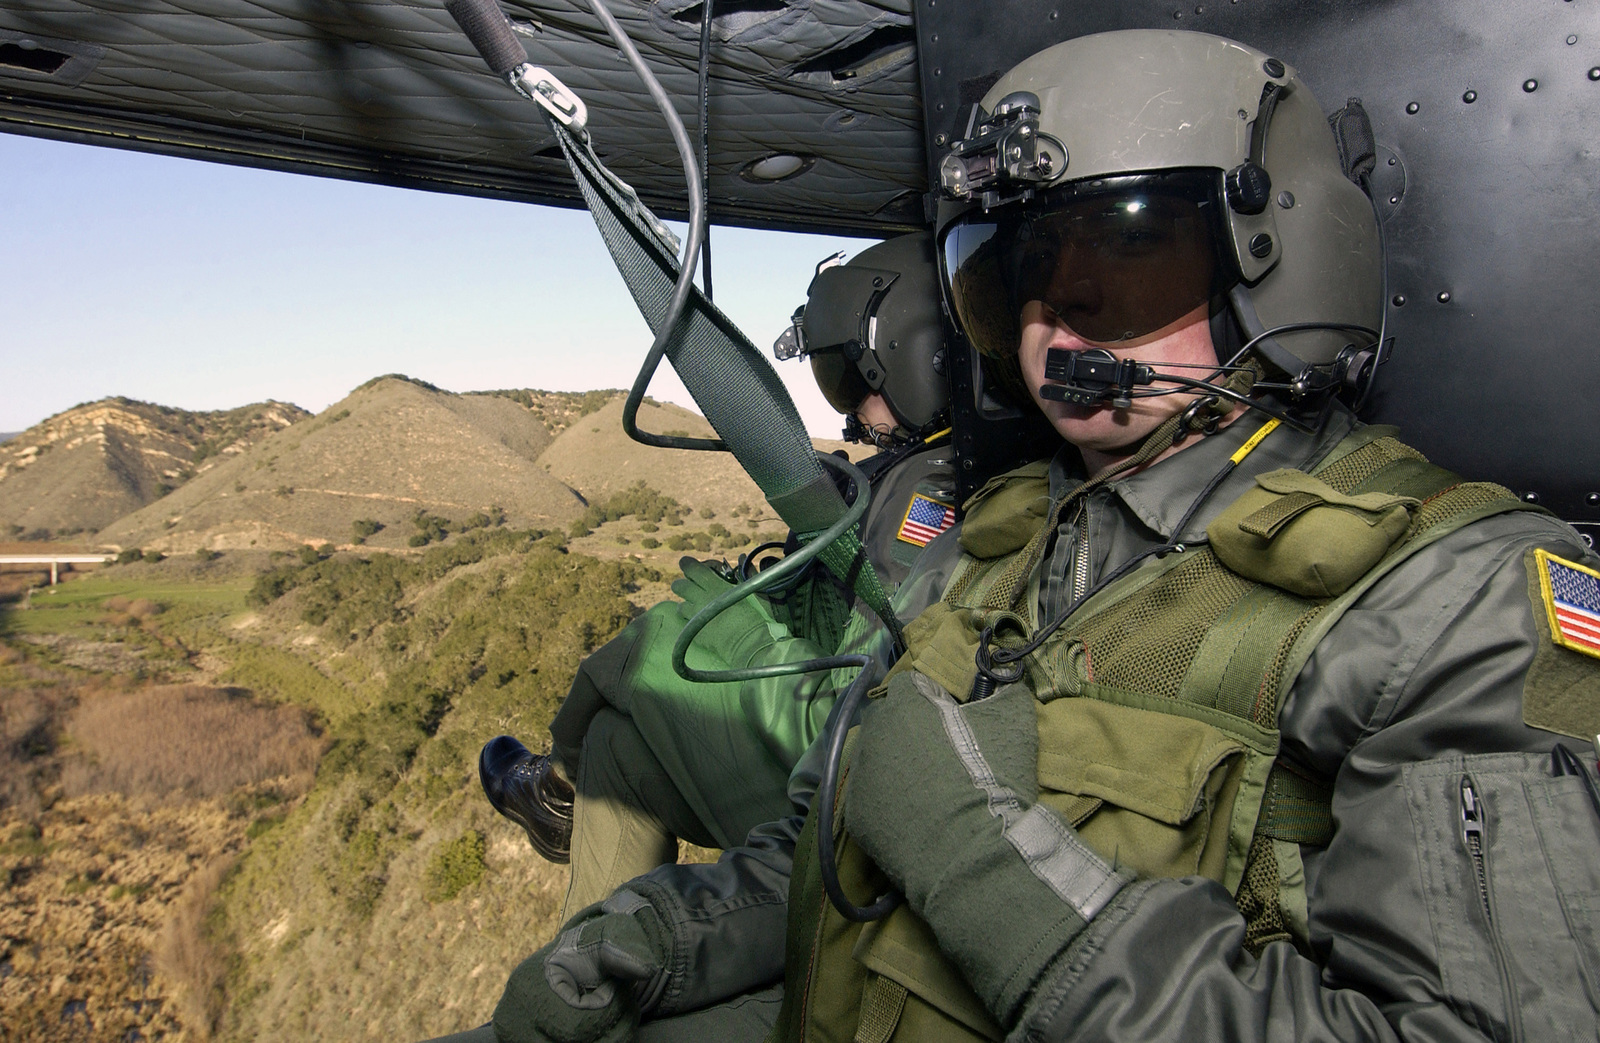 US Air Force (USAF) AIRMAN First Class (A1C) Erik McCarick, Flight Engineer, 76th Helicopter Squadron, Vandenberg Air Force Base (AFB), California (CA), scans the San Luis Obispo county scenery from his seat on a USAF UH-1N Helicopter